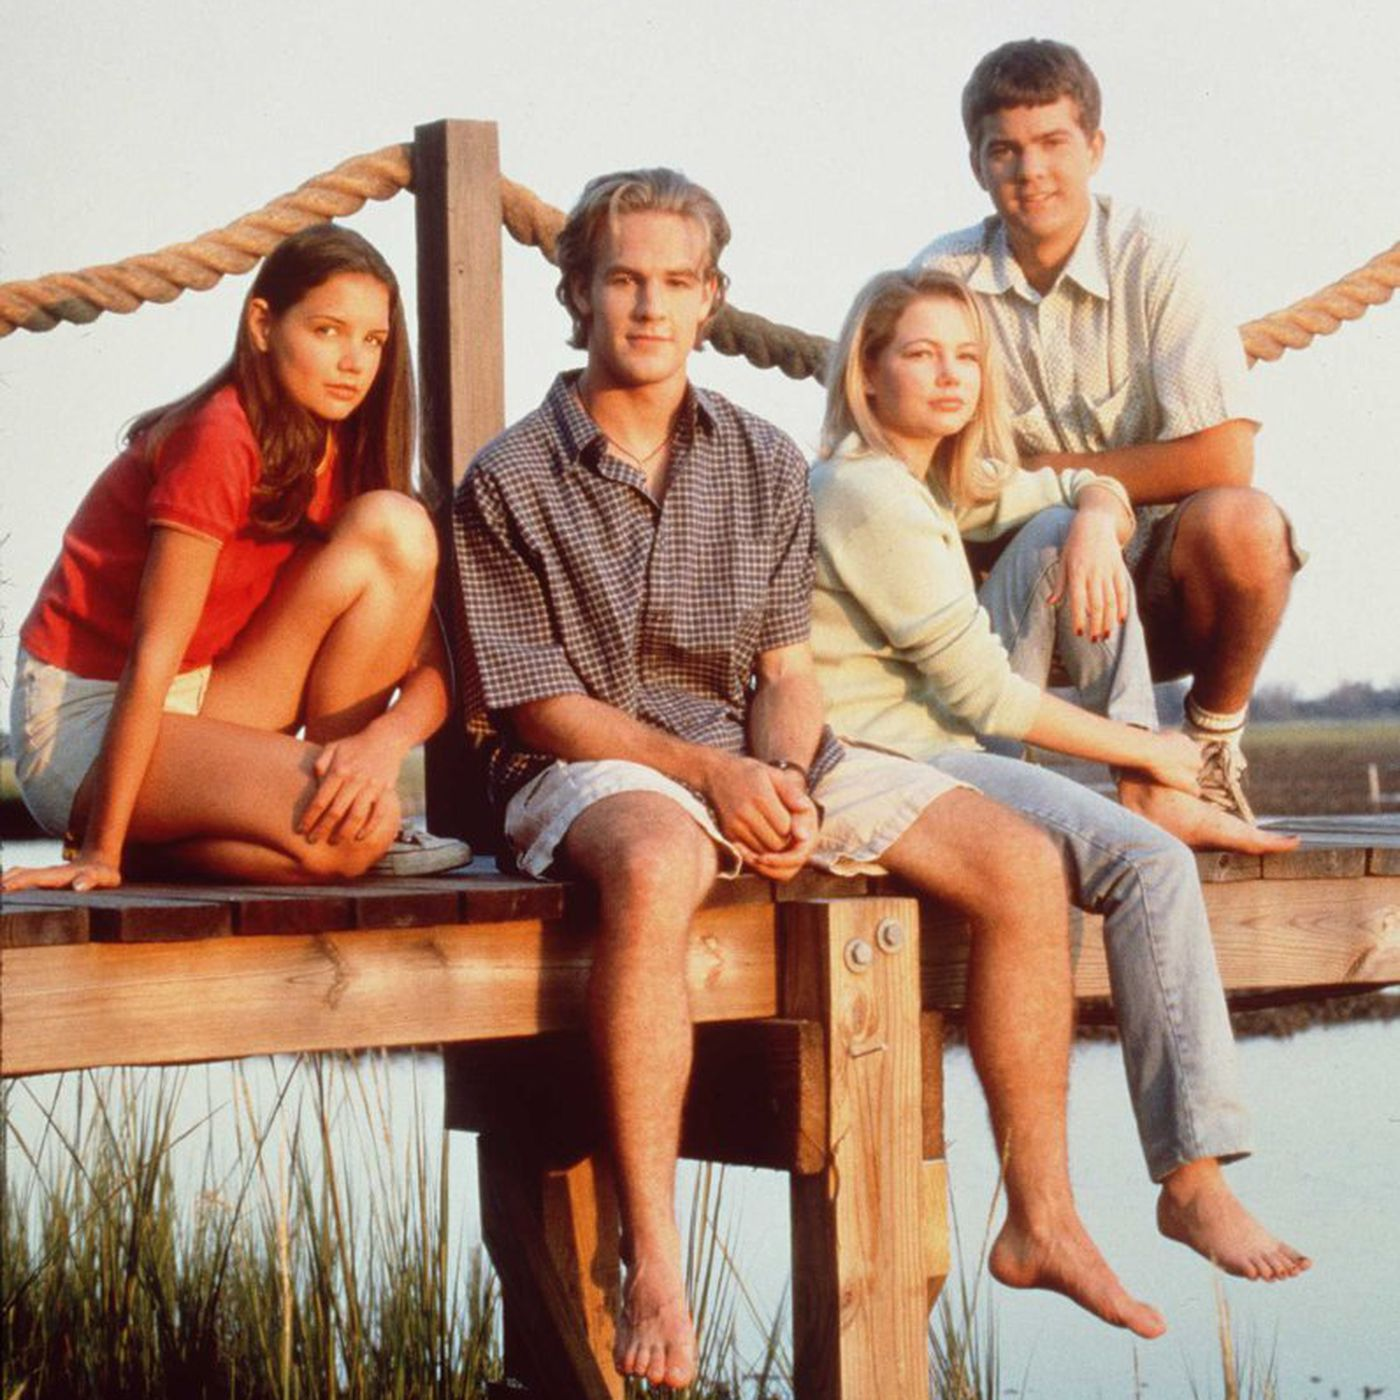 20 years ago, Dawson's Creek introduced a love triangle that changed